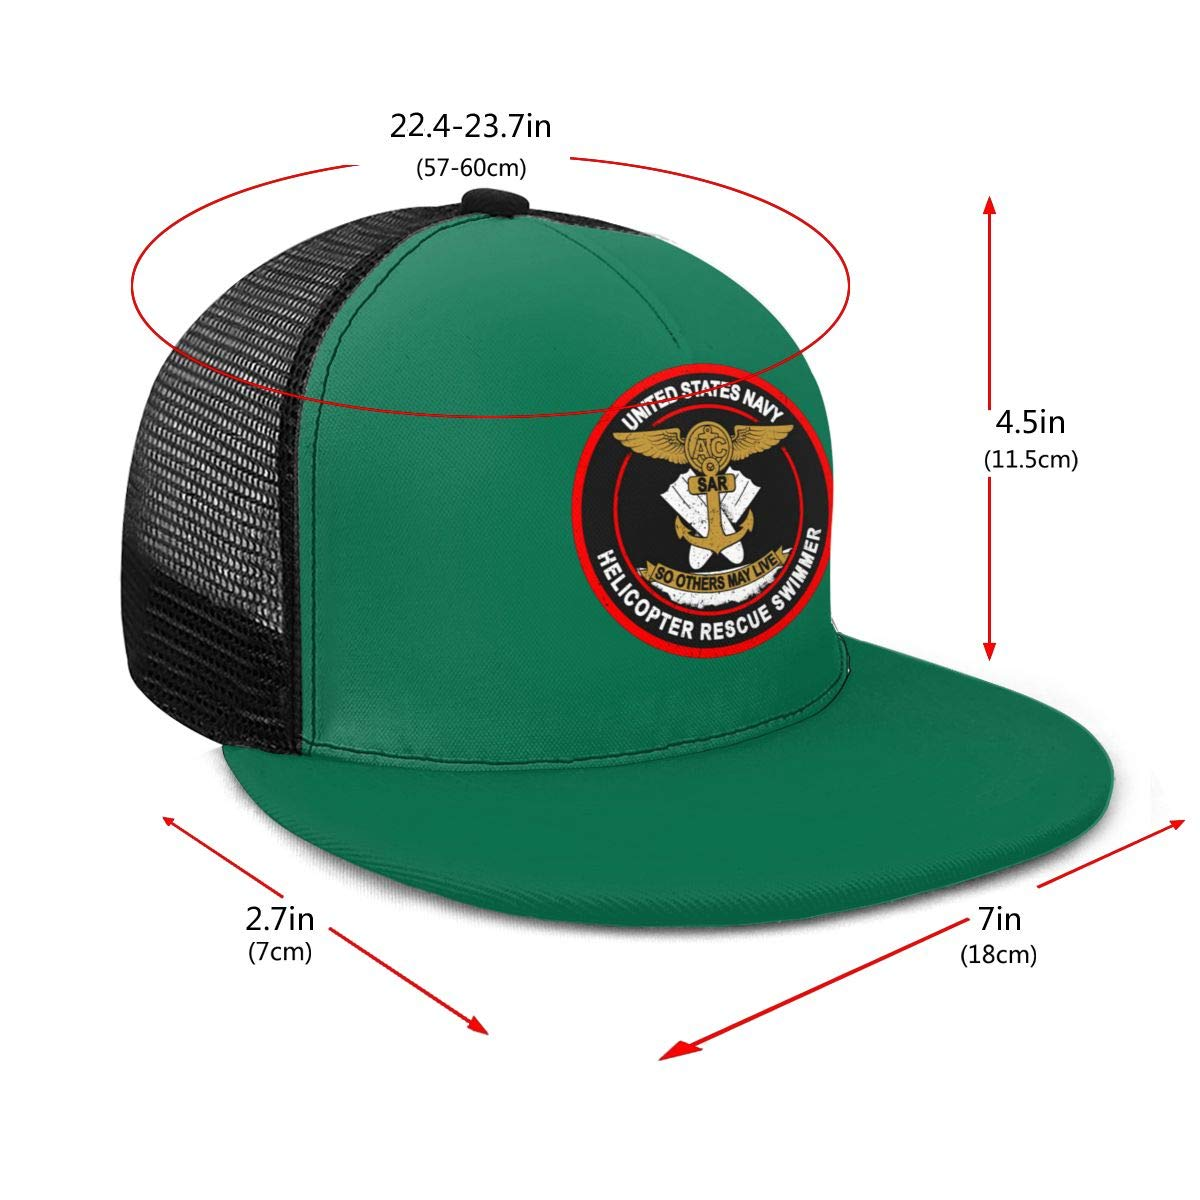 Helicopter Search and Rescue Swimmer Classic Grid Hop Flat Along Baseball Hat Snapback Unisex Hats Adjustable